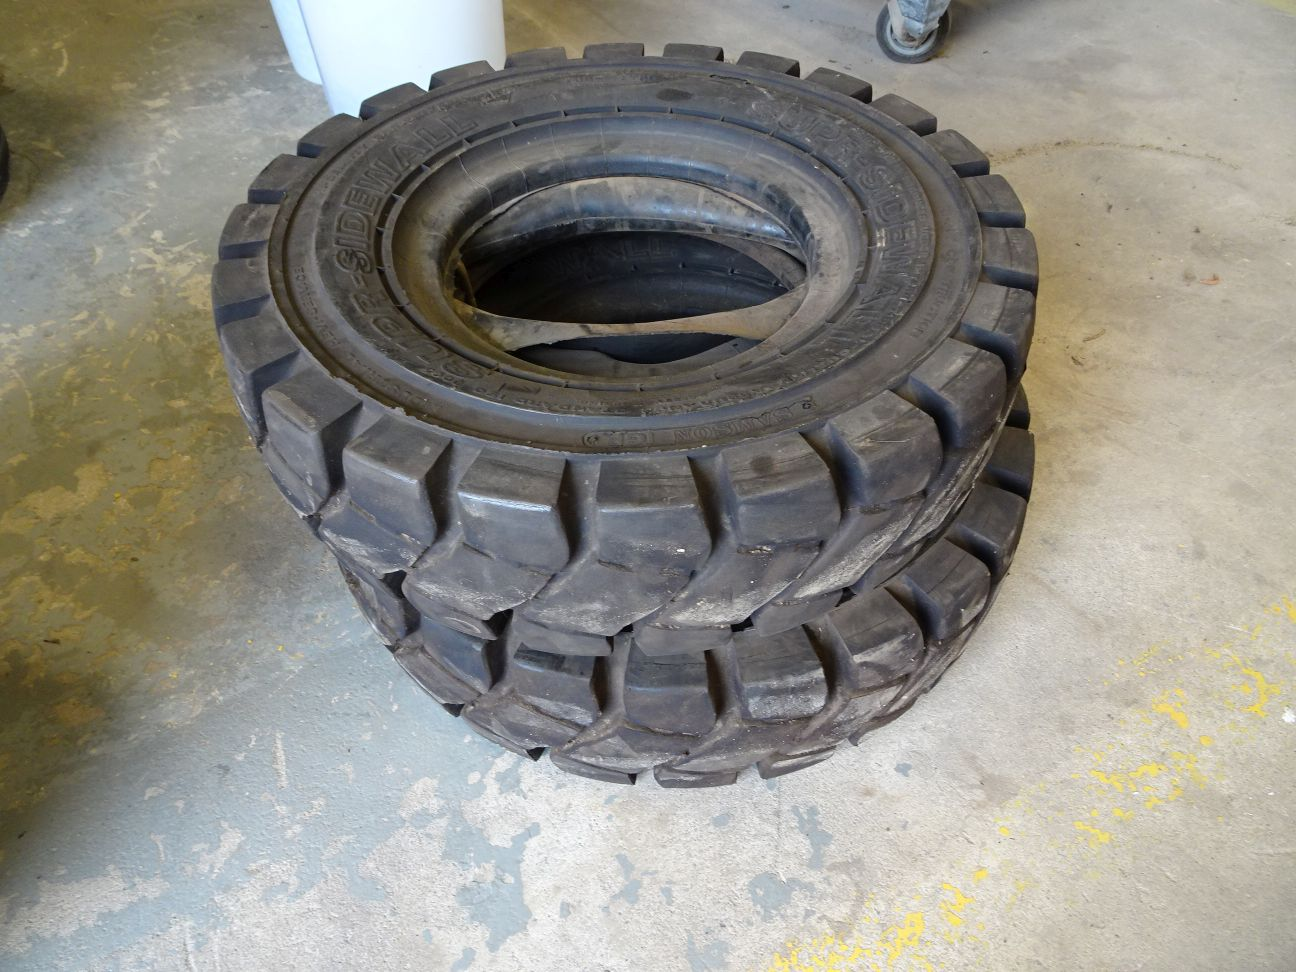 Lot 33 - (2) SAMSON SUPER SIDE WALL TIRES WITH TUBES, SIZE 7.00X12 NHS (LOCATION: SHOP)